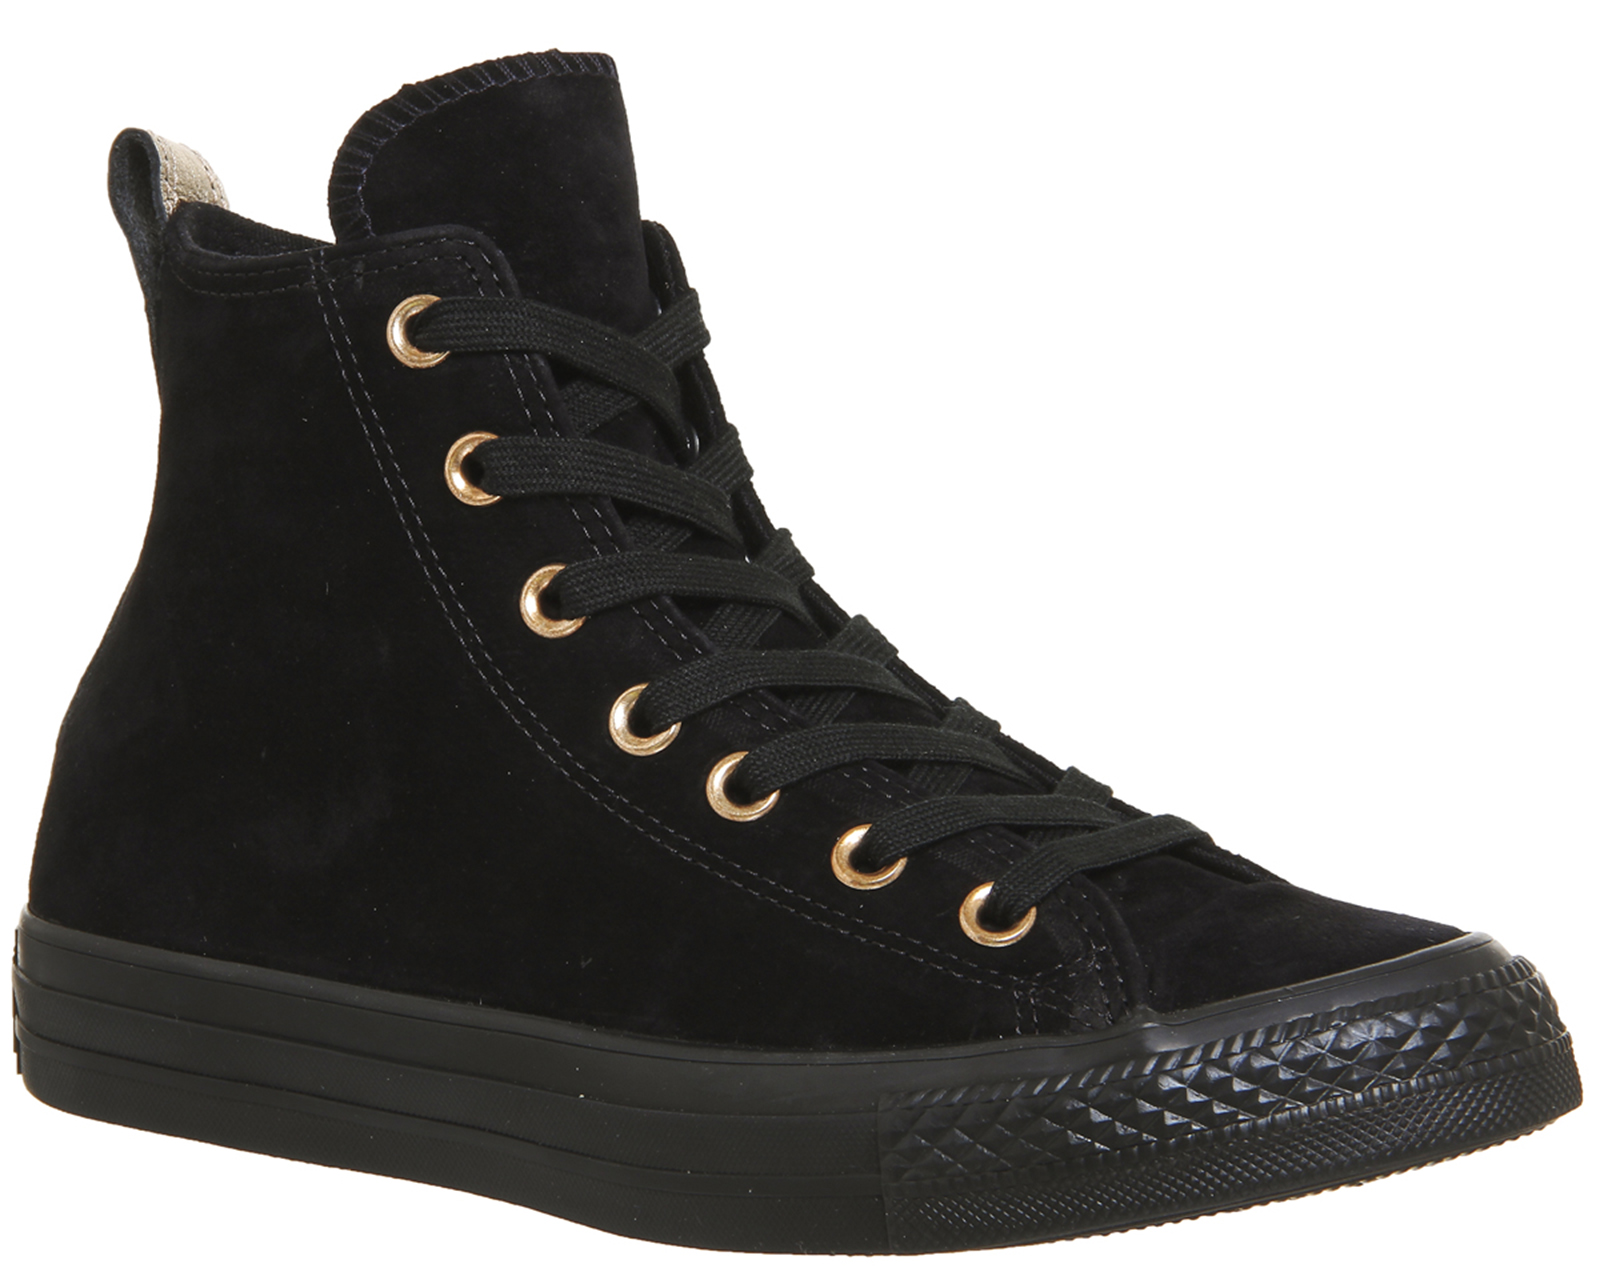 b449eb42d2 Sentinel Womens Converse All Star Hi Leather BLACK SUEDE METALLIC Trainers  Shoes